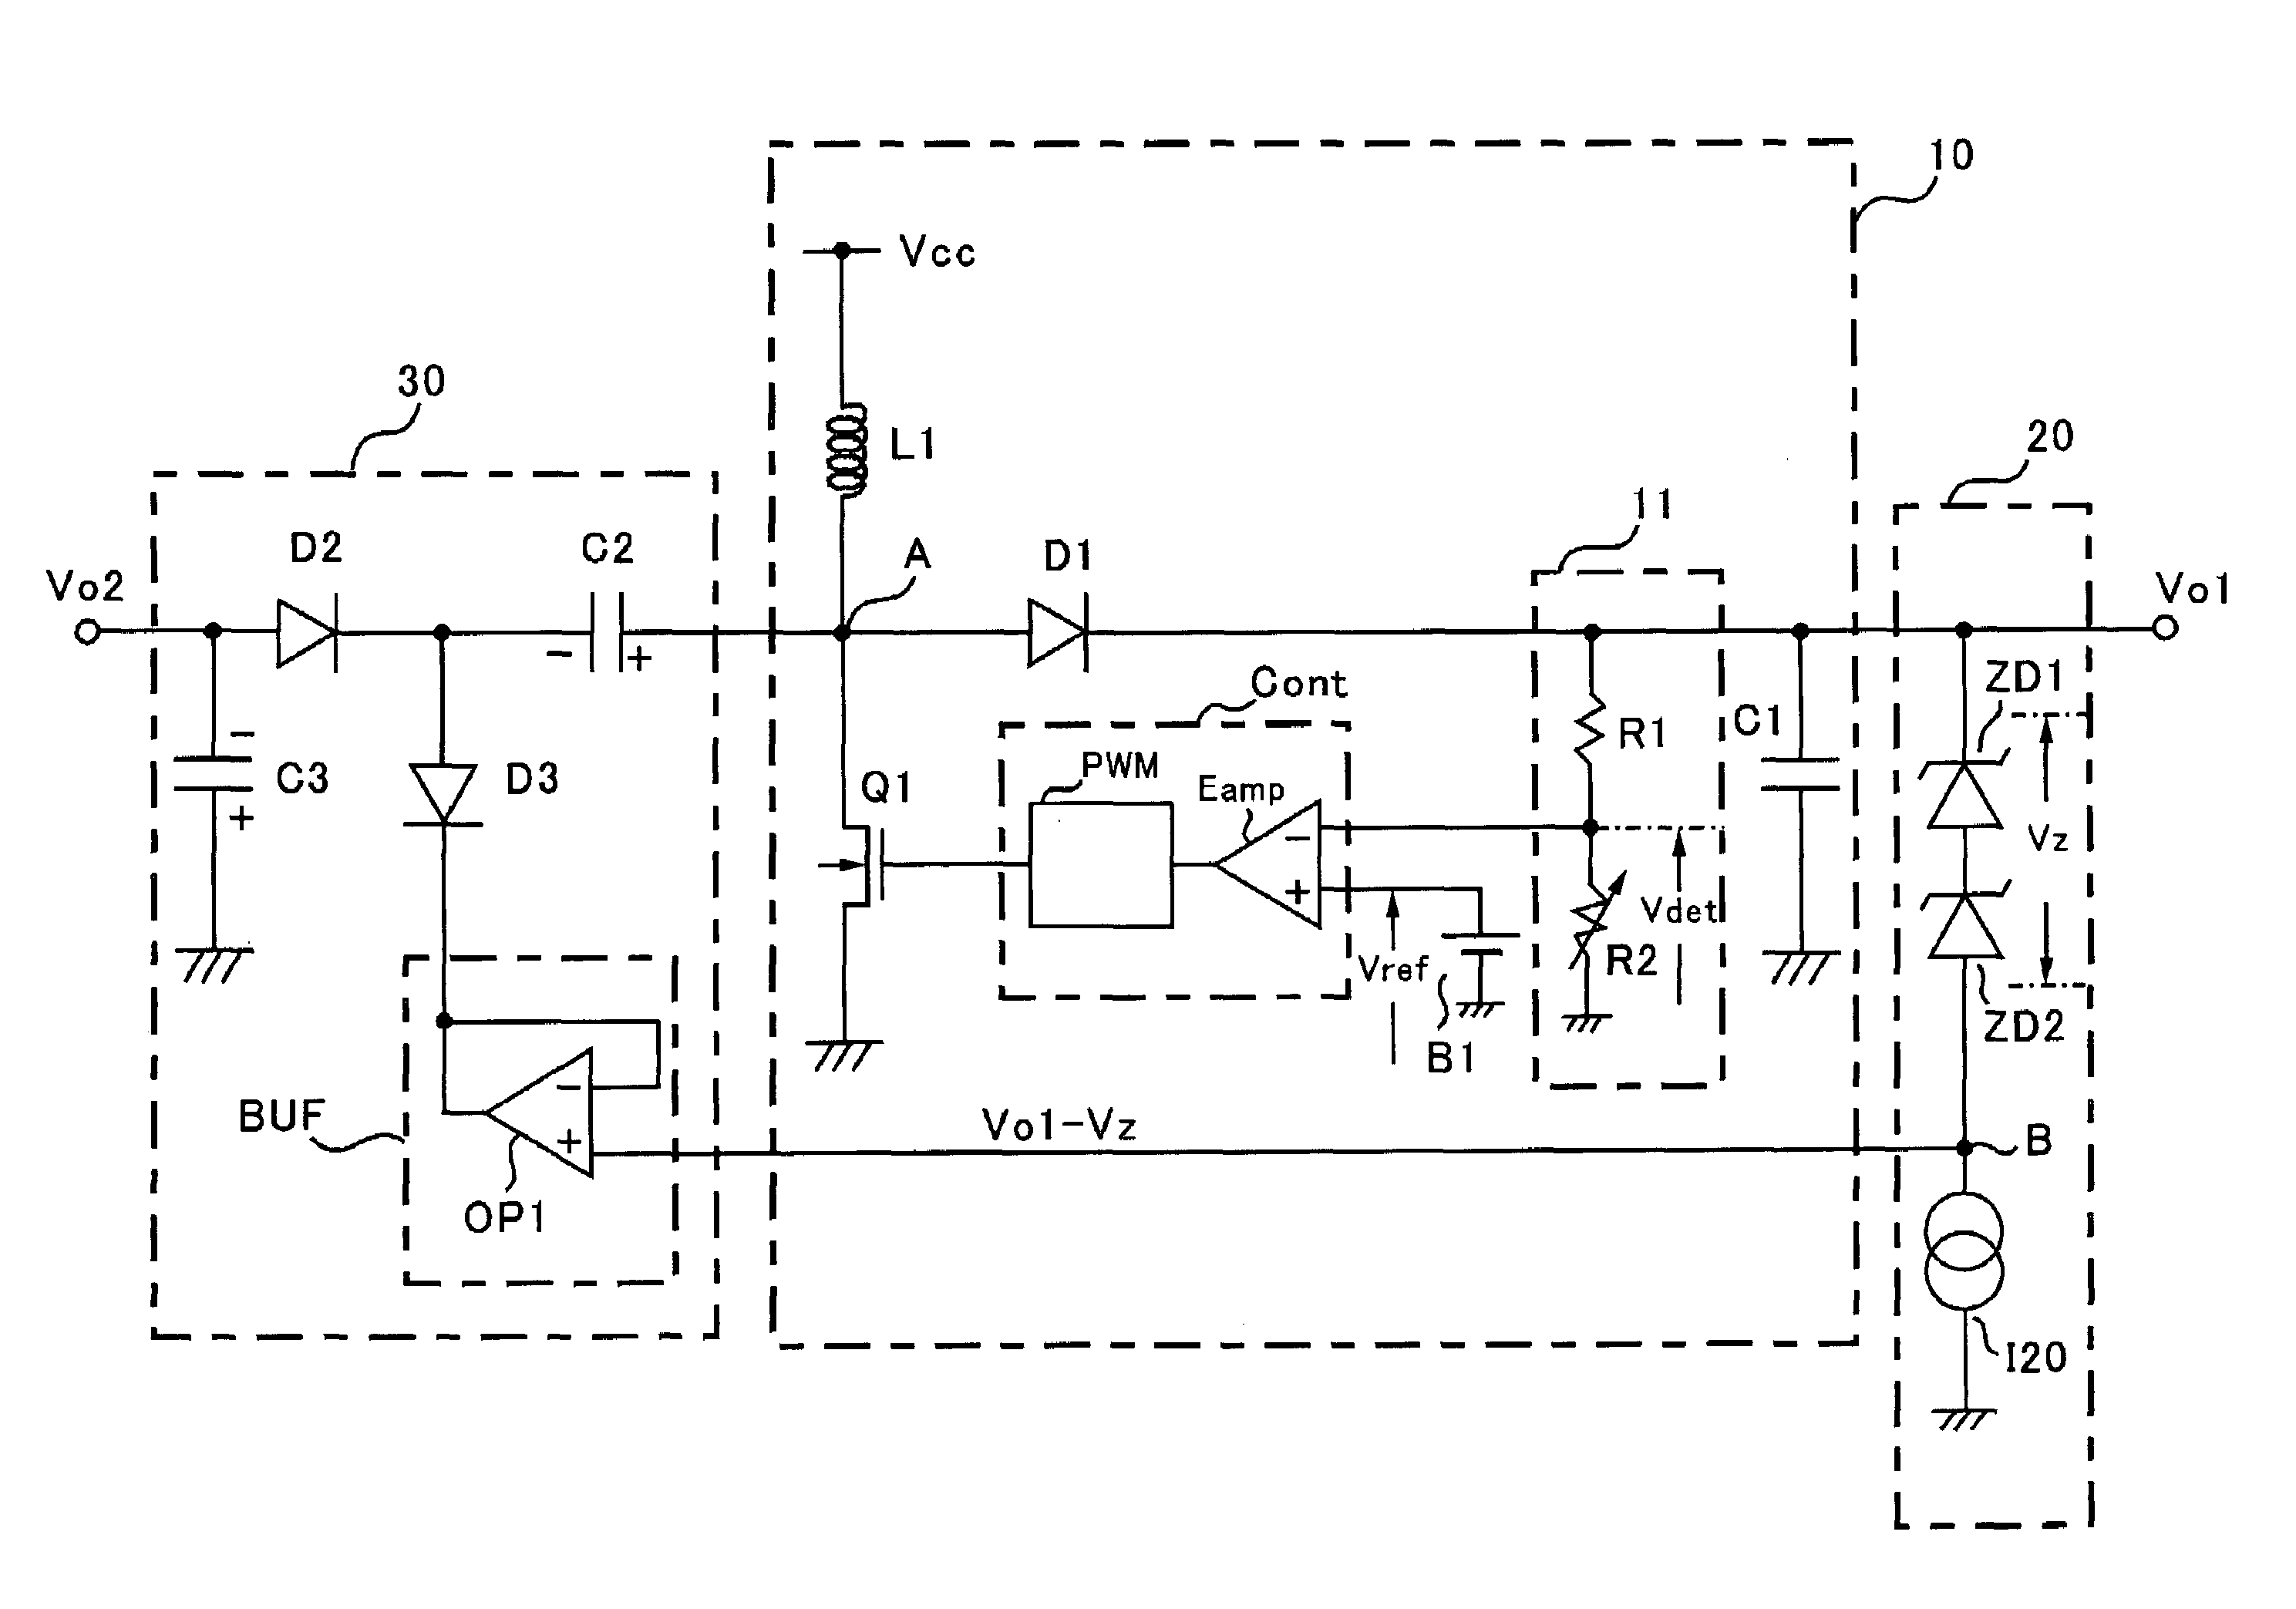 Power Supply Schematic Diagram 1555a Detailed Wiring Diagrams Msd Ignition For A R2857167ac Patent Us6972547 Positive And Negative Output